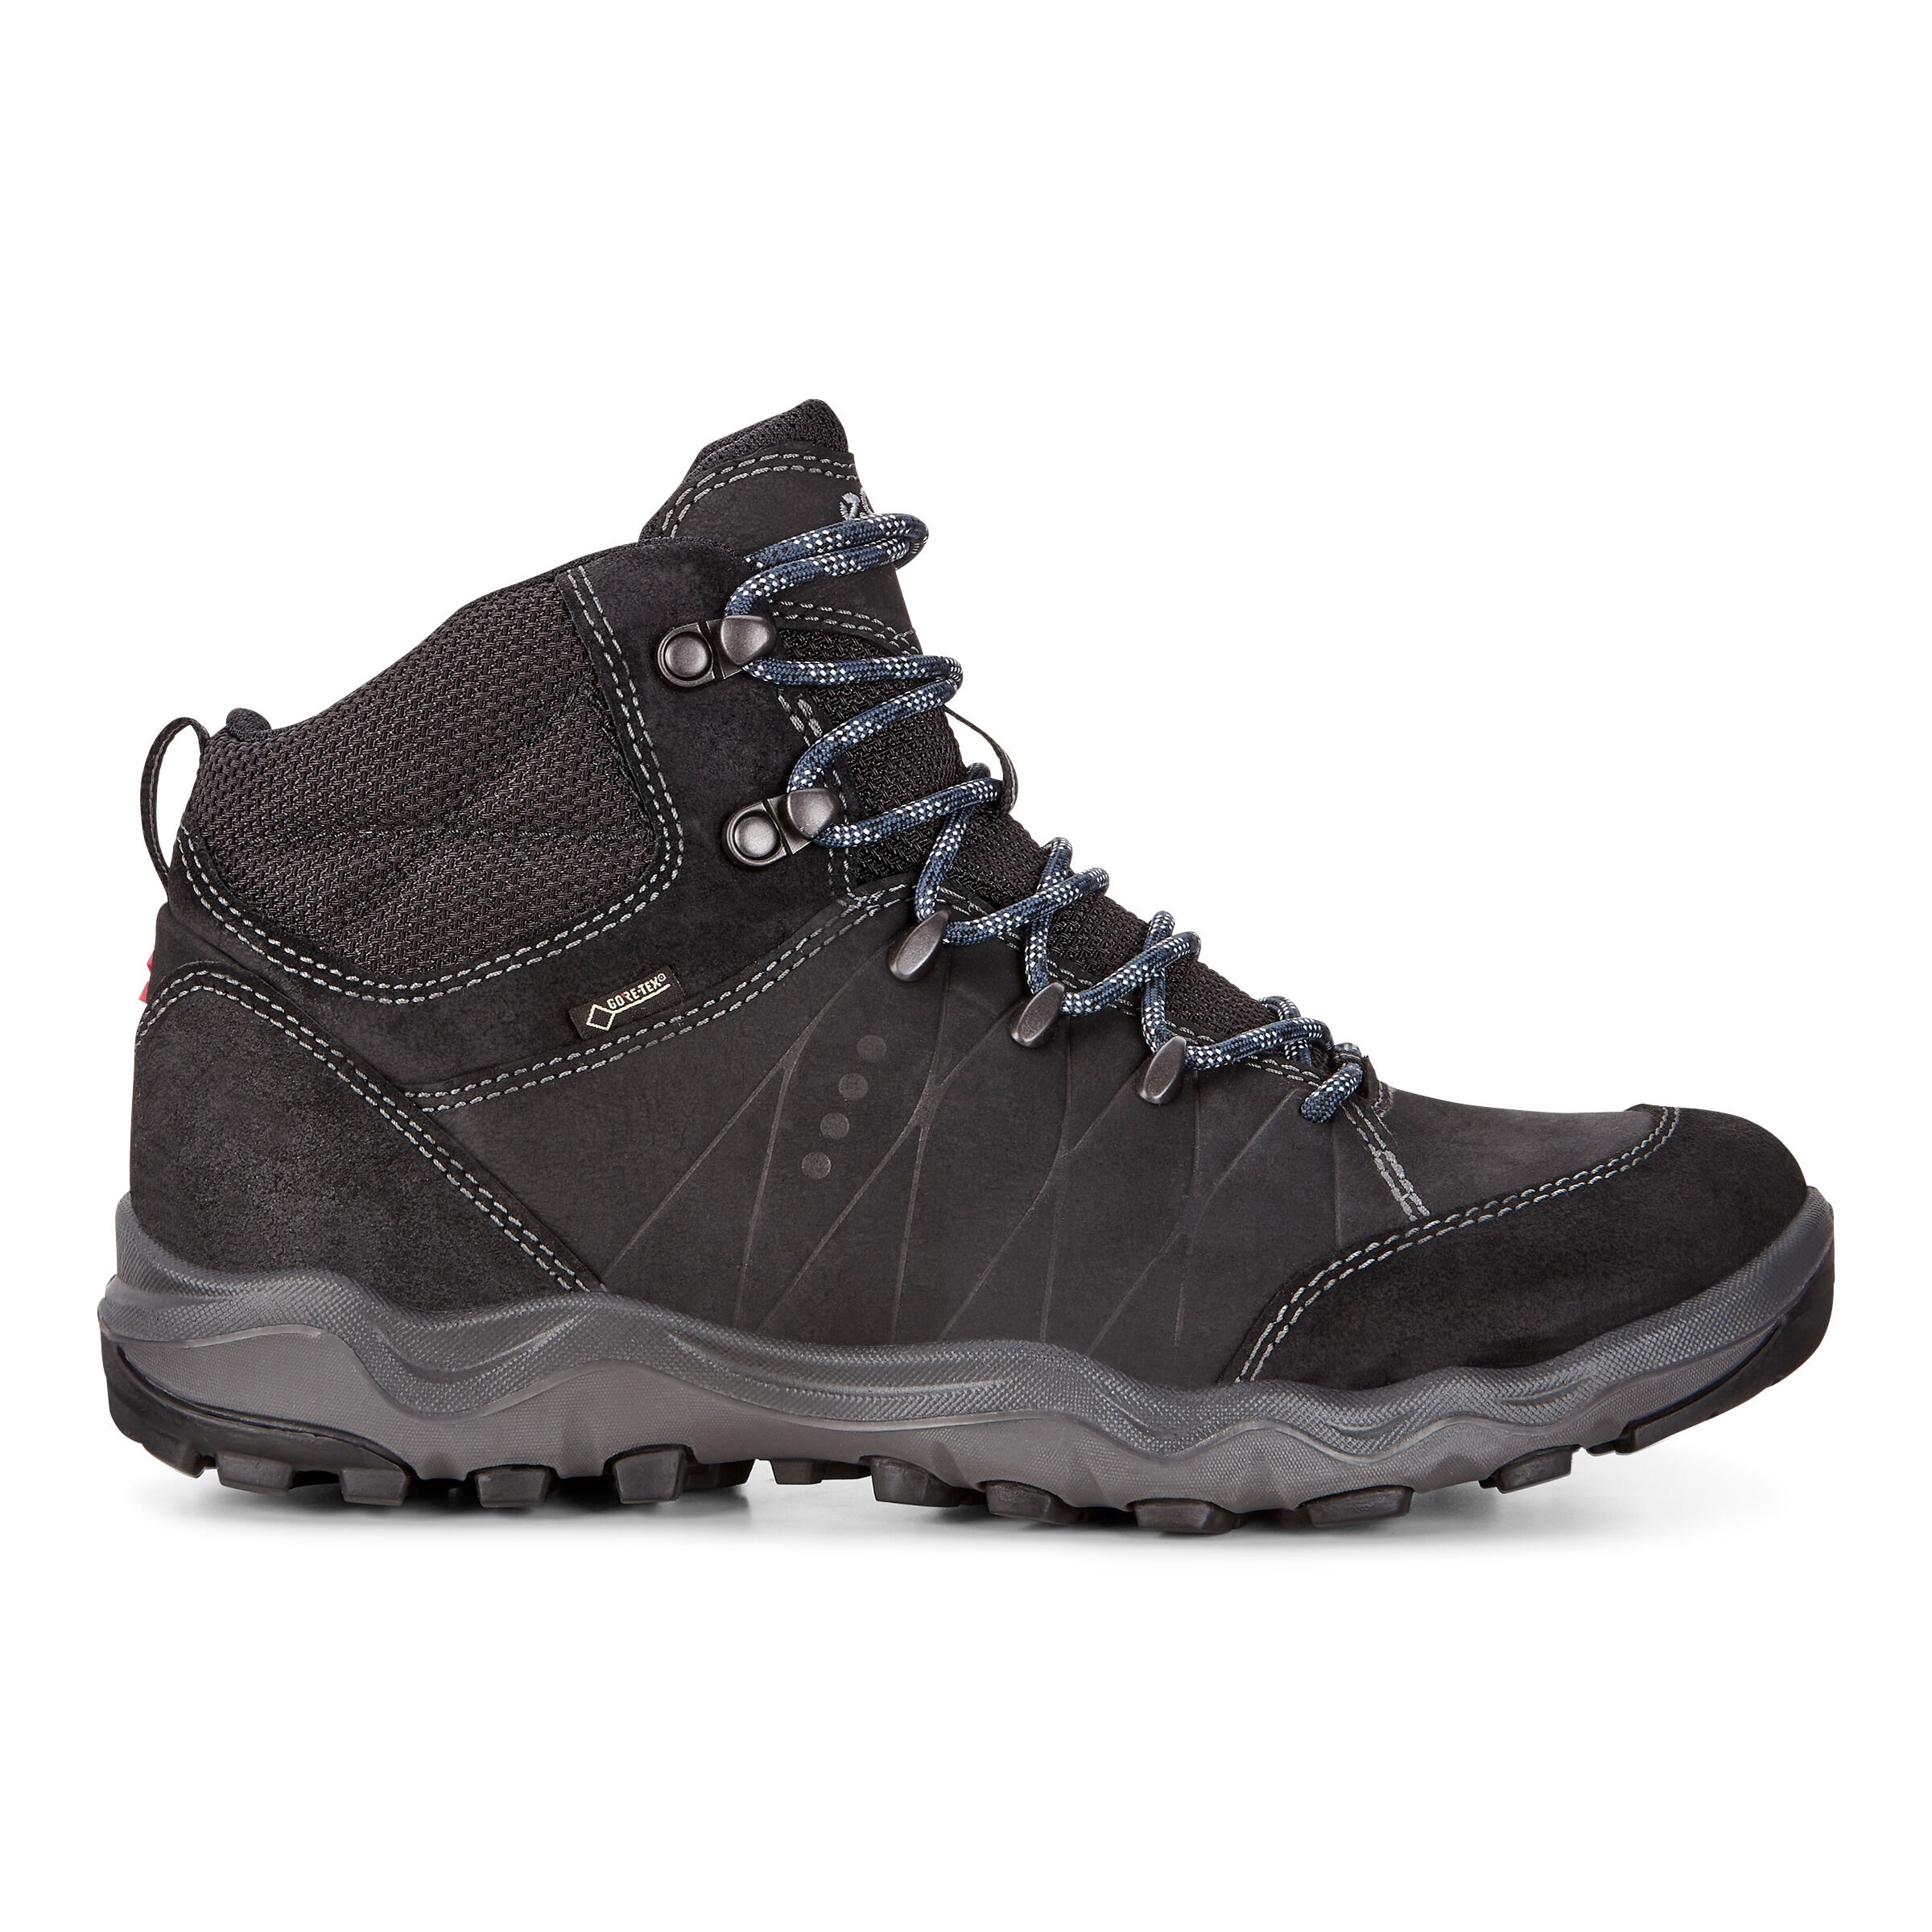 ECCO Men's Ulterra GTX High Top